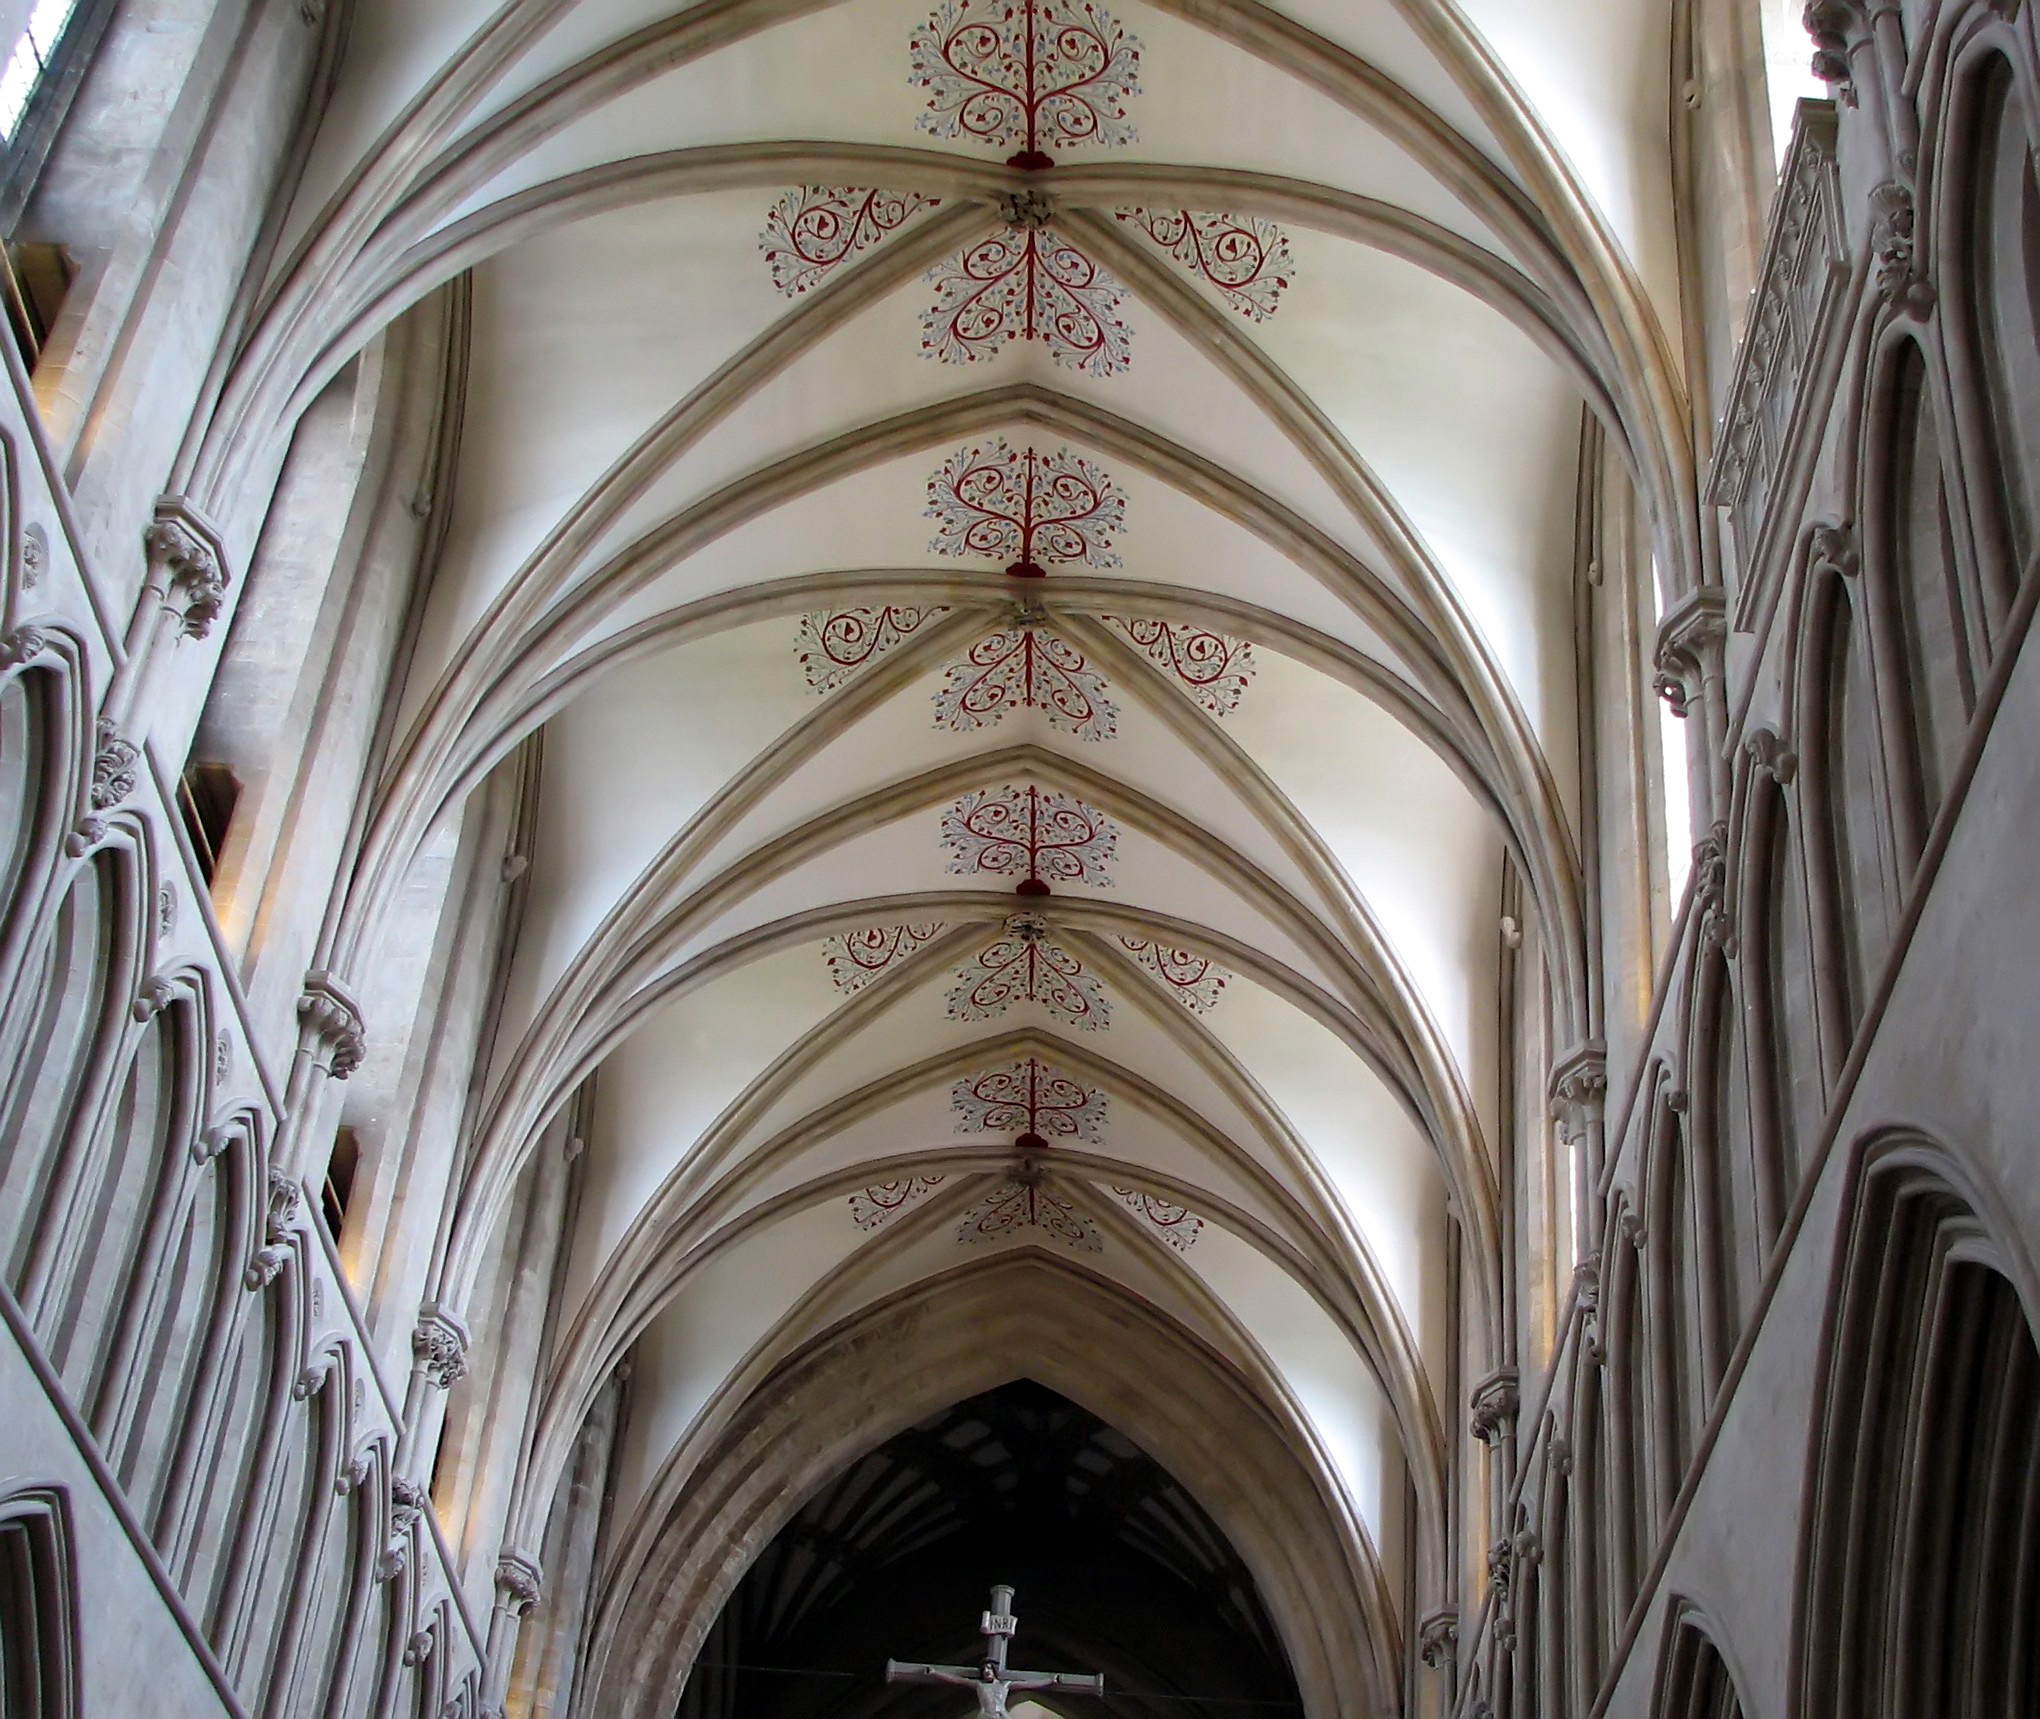 Ceiling wikidwelling fandom powered by wikia for Images of cathedral ceilings